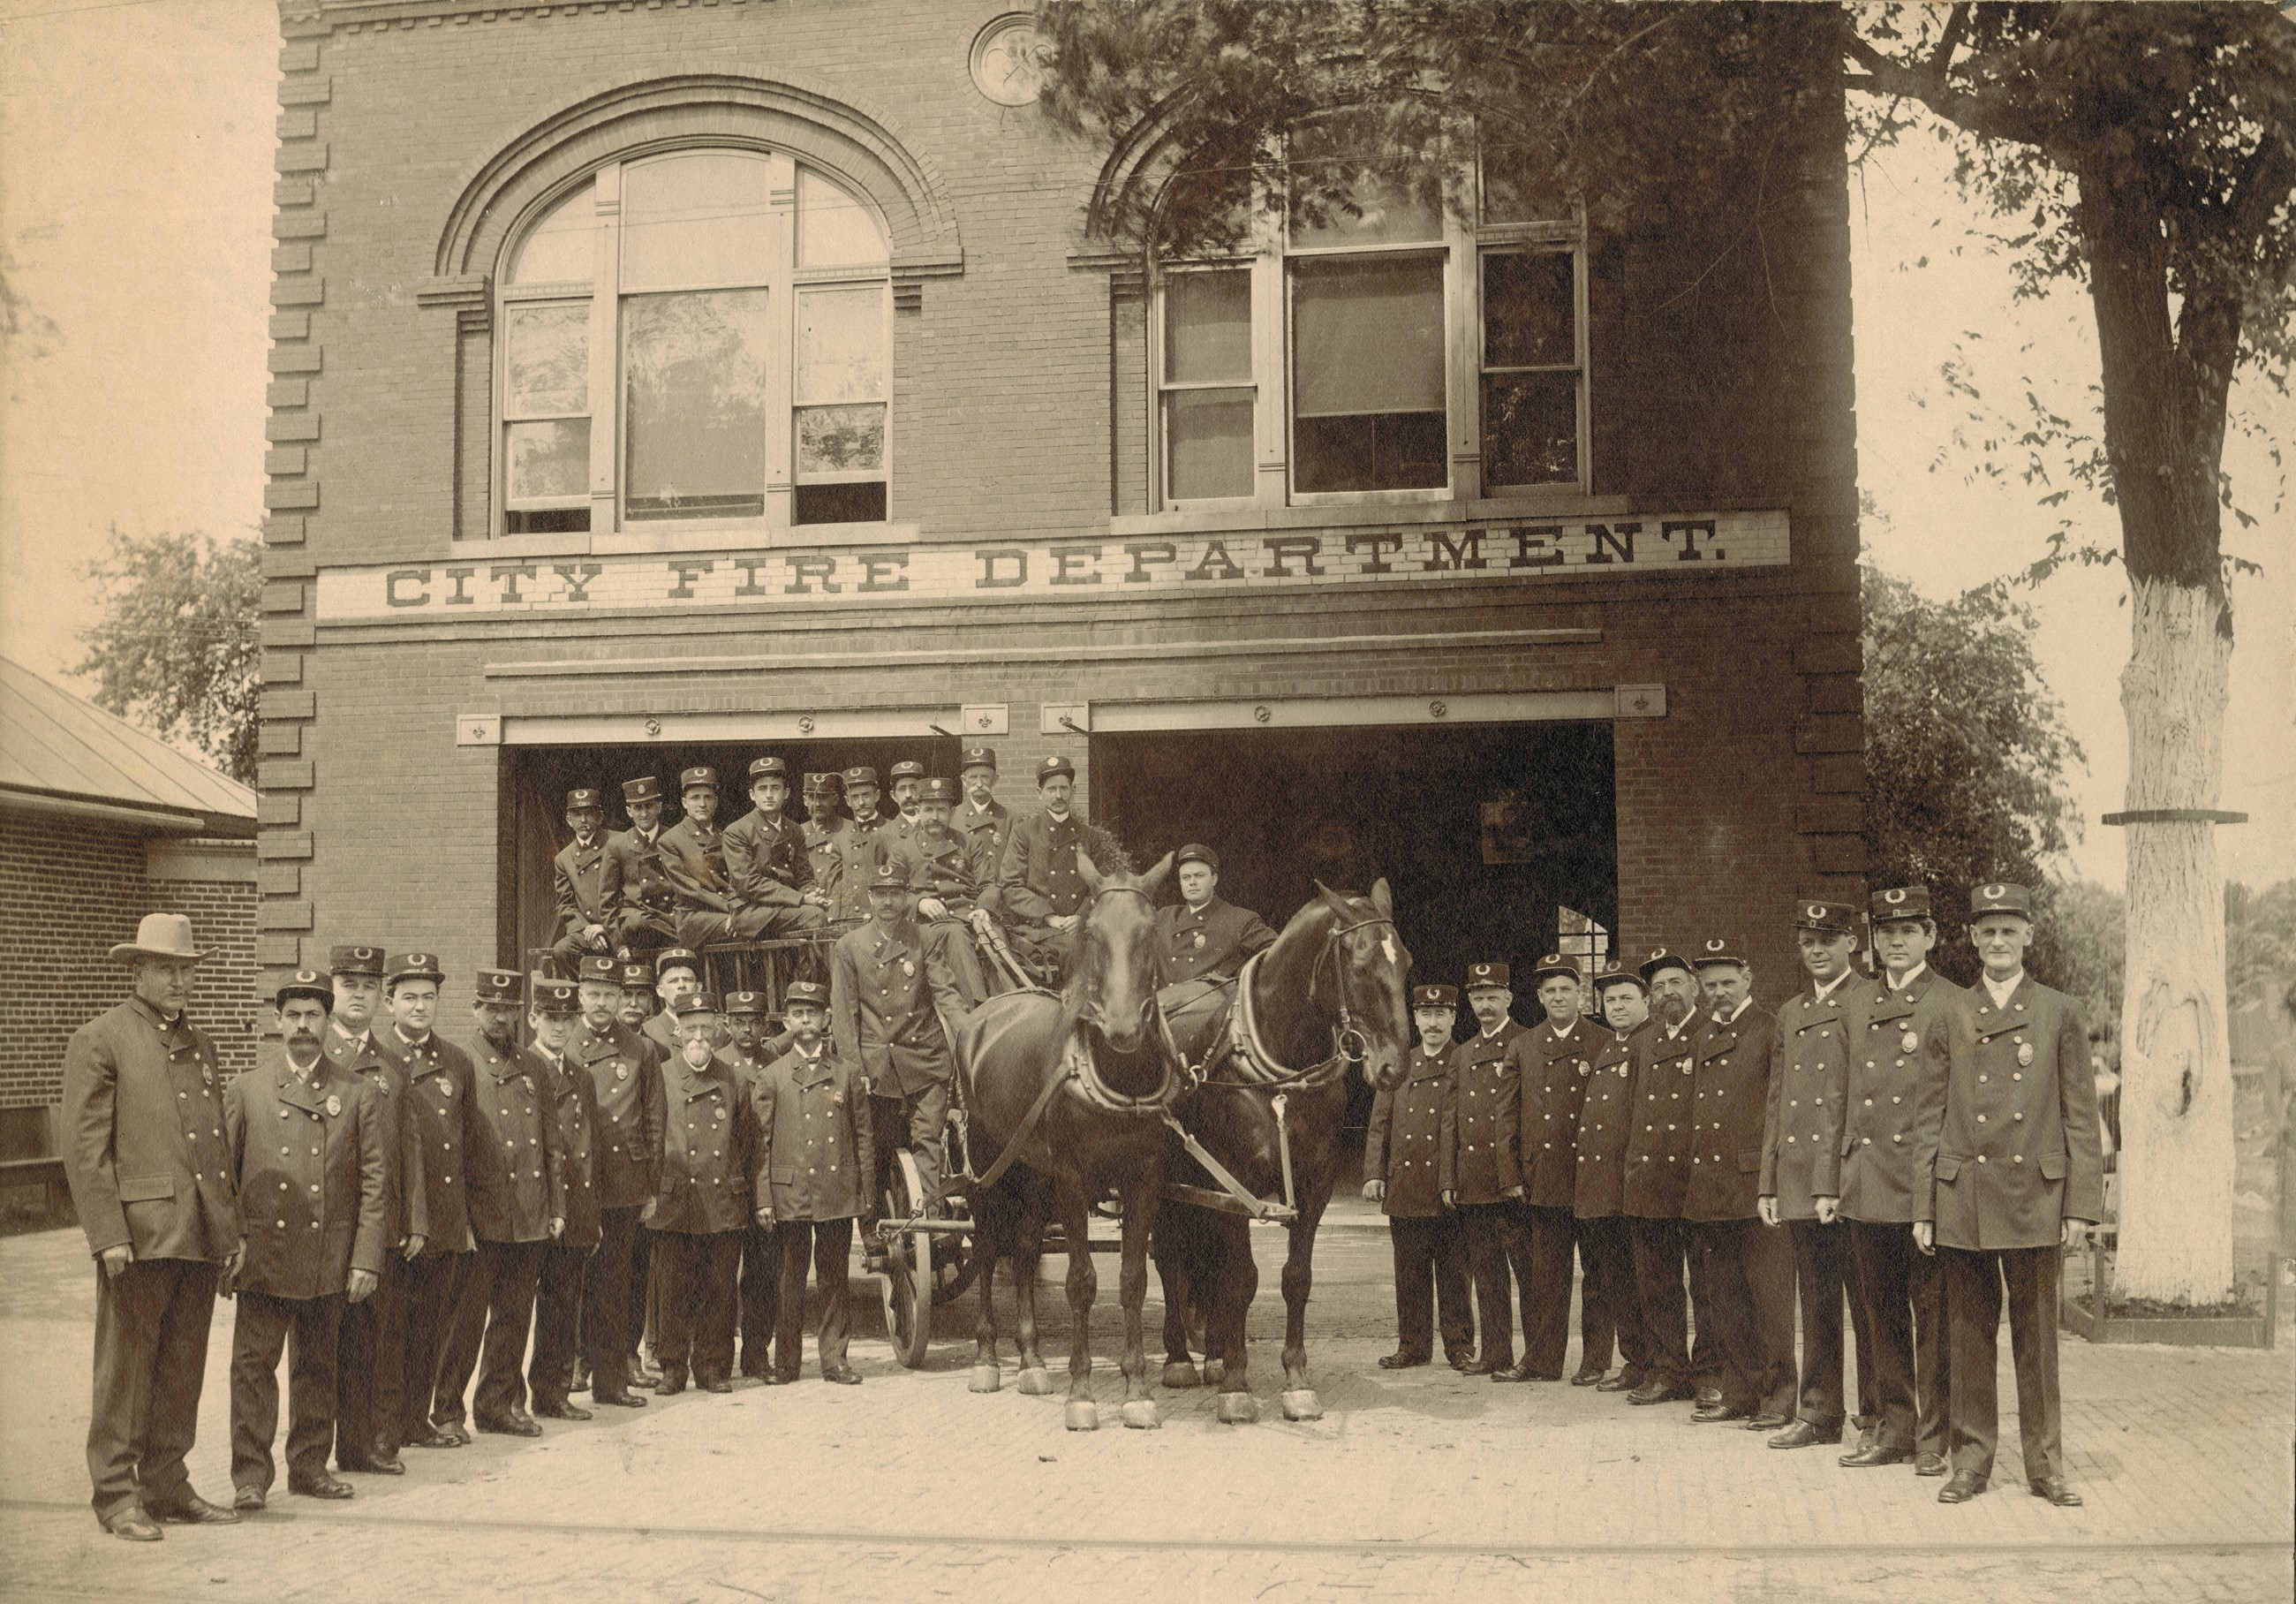 Edwardsville Fire Department 1905